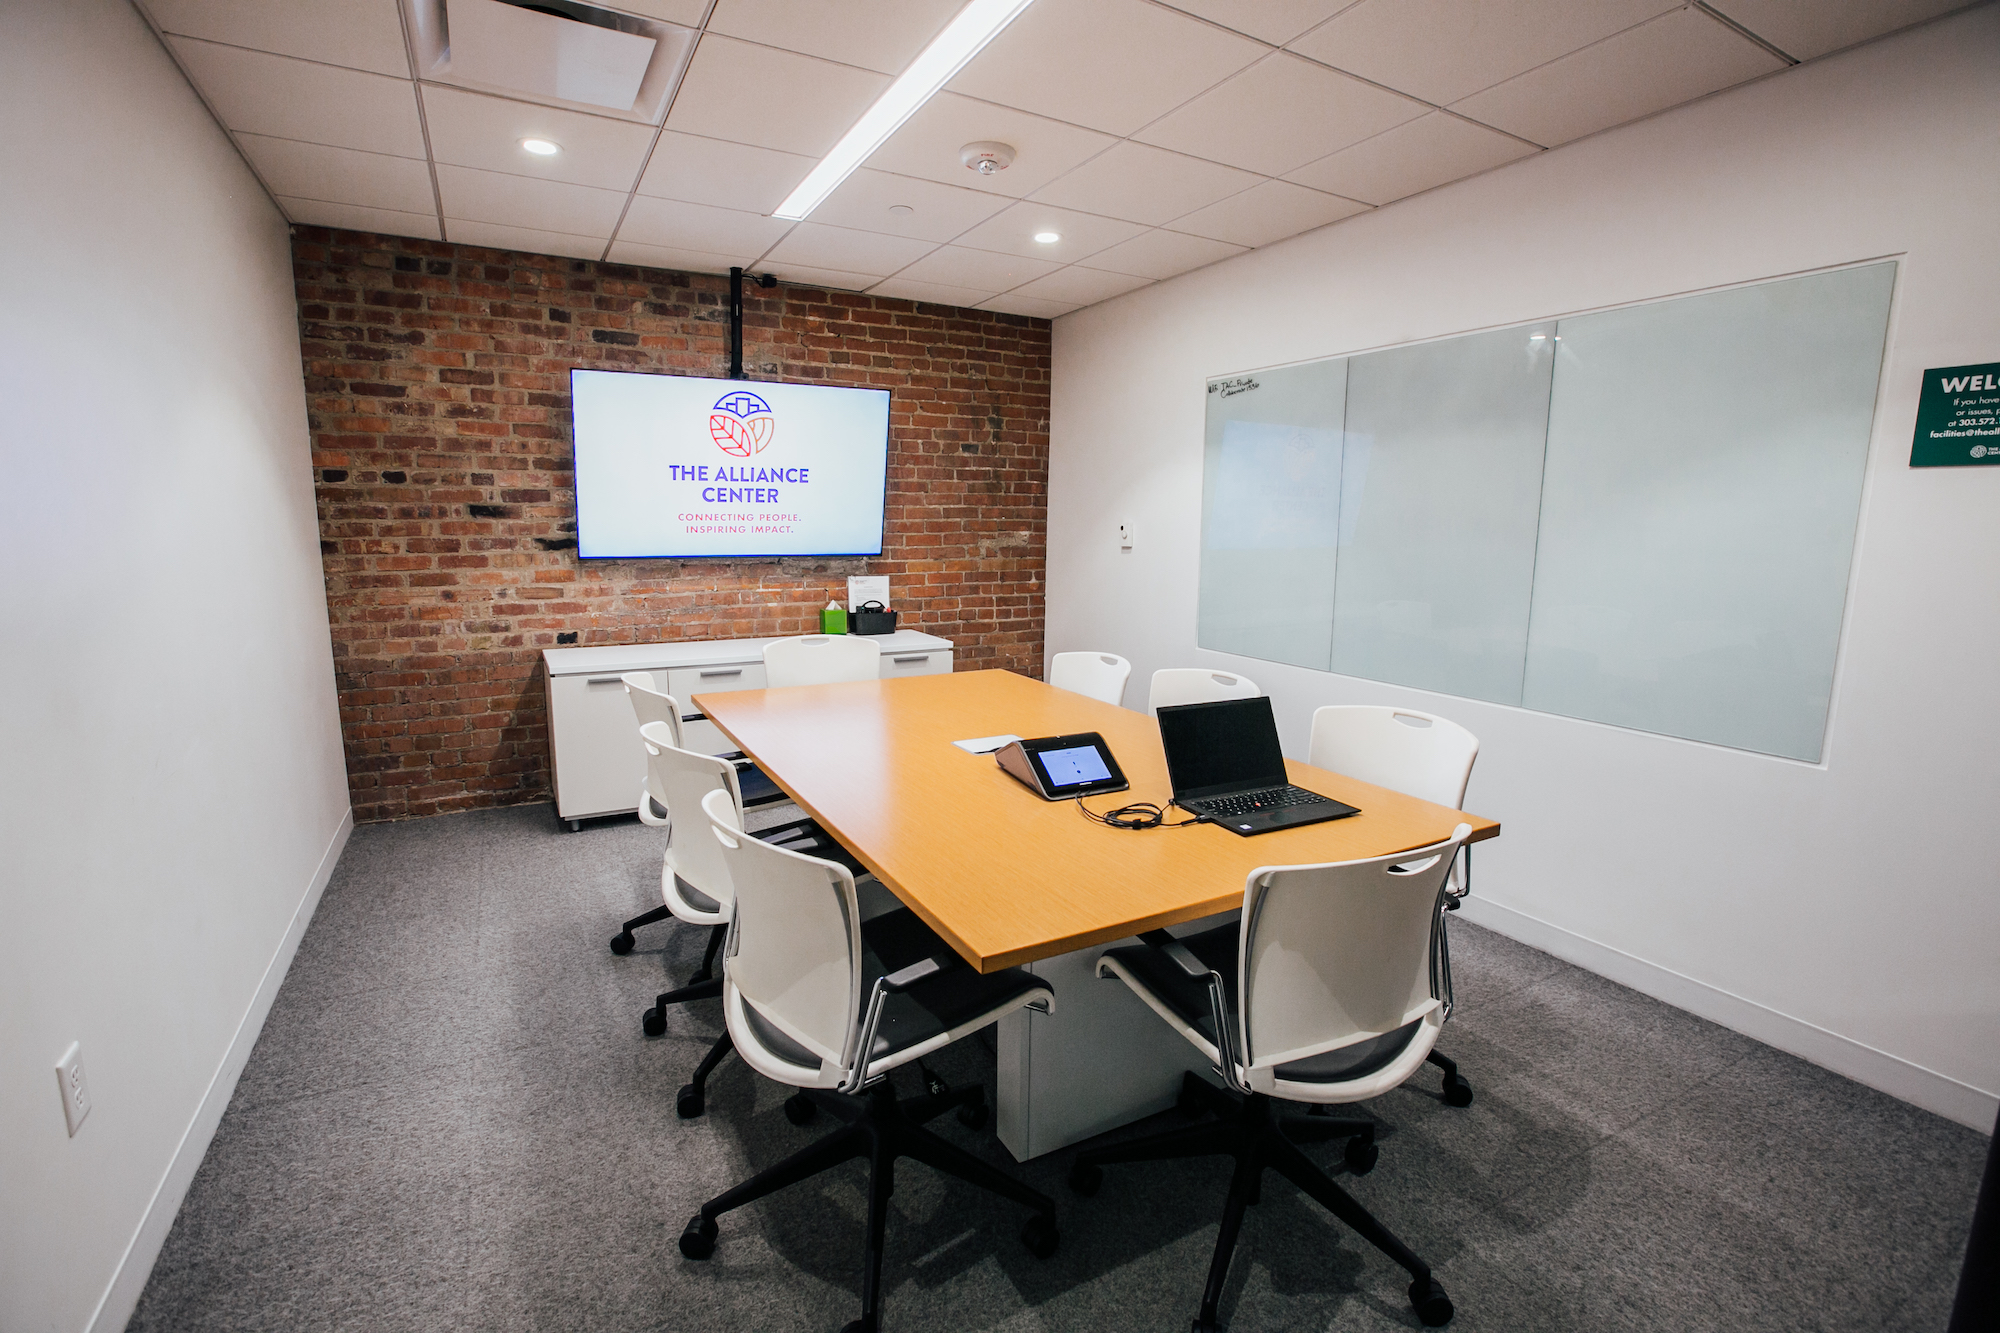 A room with two white walls, an exposed brick wall where a television screen is mounted, and an empty conference table.